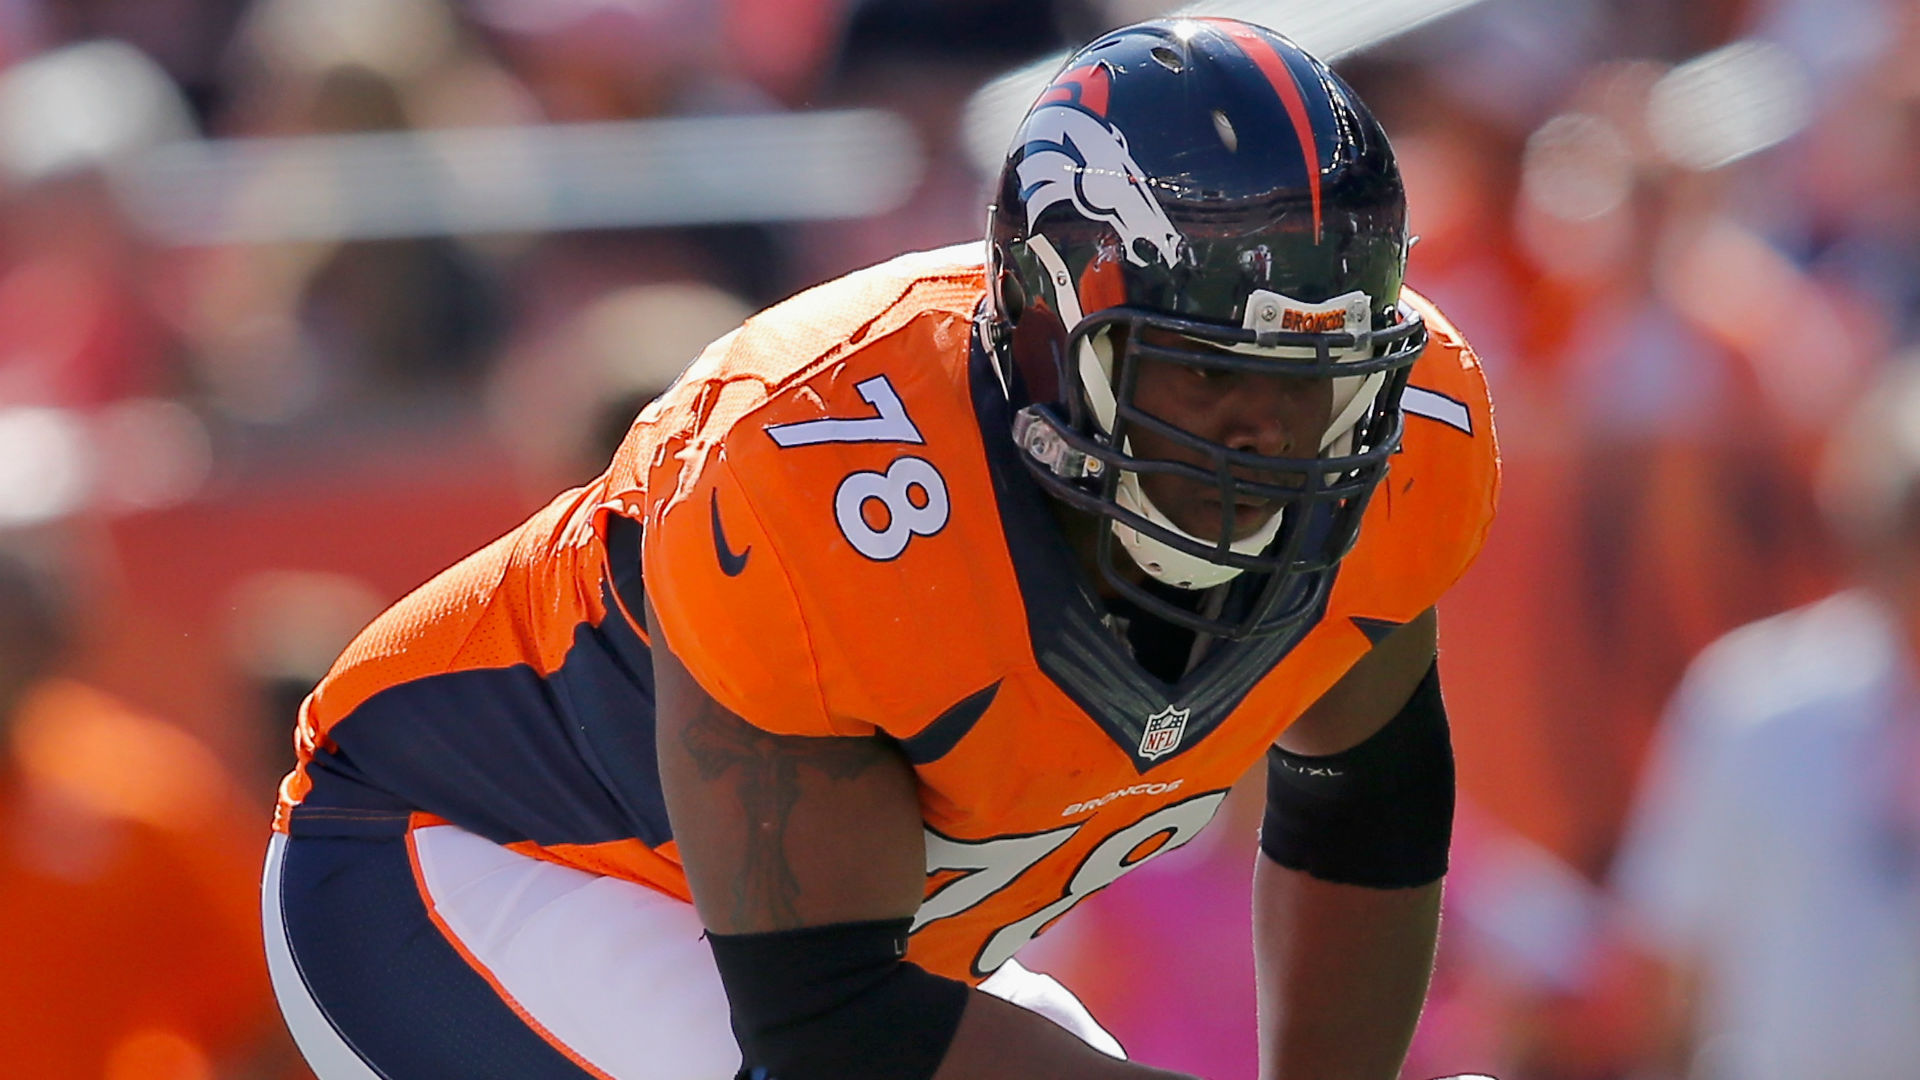 Former Broncos All-Pro lineman Ryan Clady retires